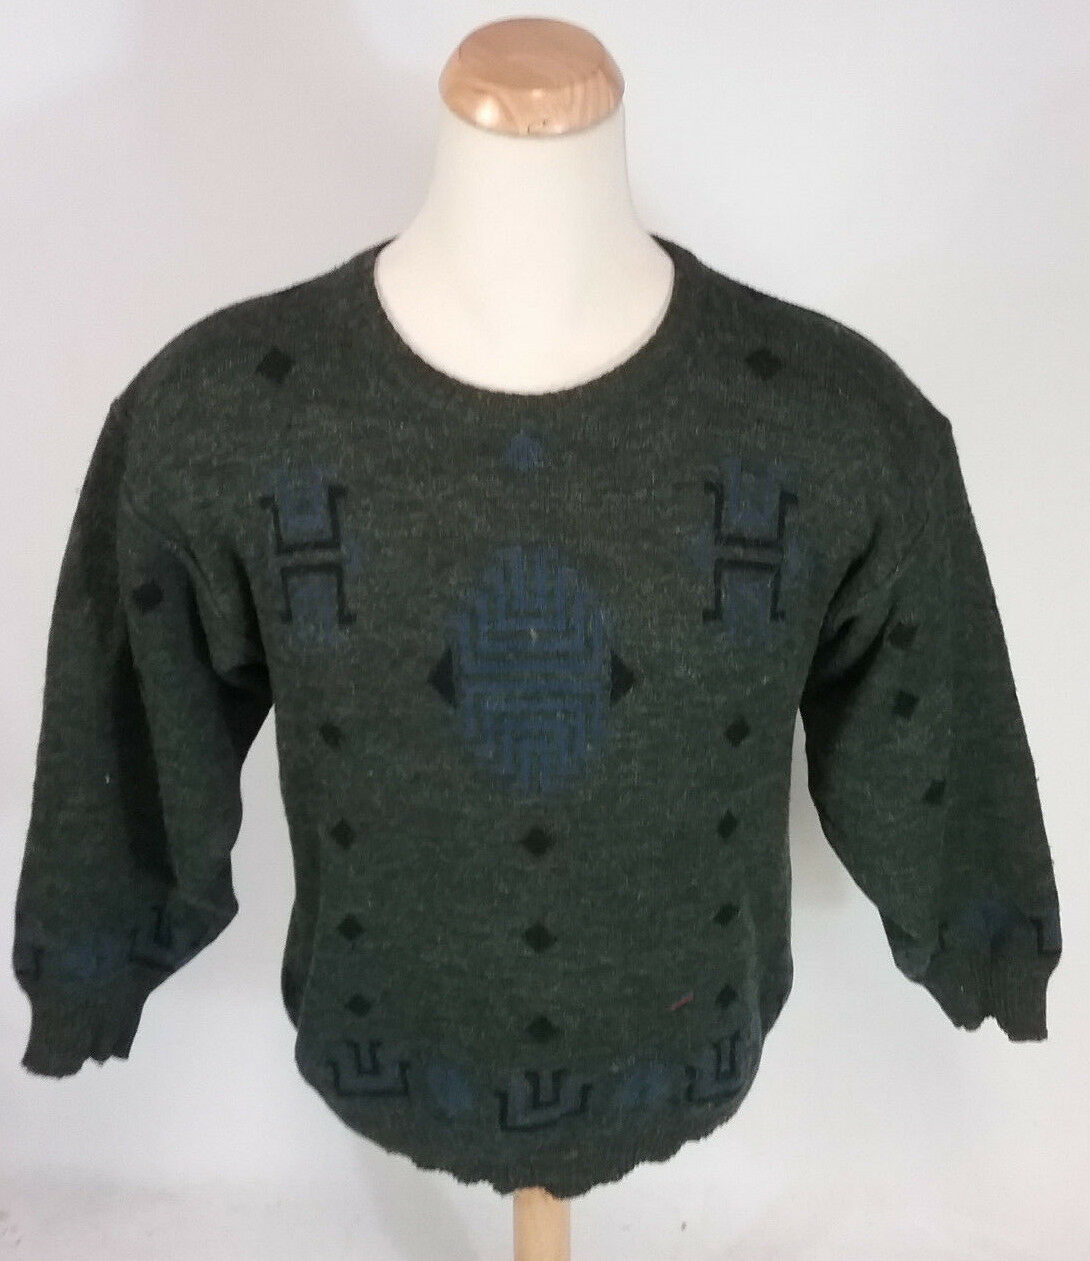 Vintage 50s Alpaca Wool Navajo Indian Winter Sweater XL/L Made  Ski Shirt